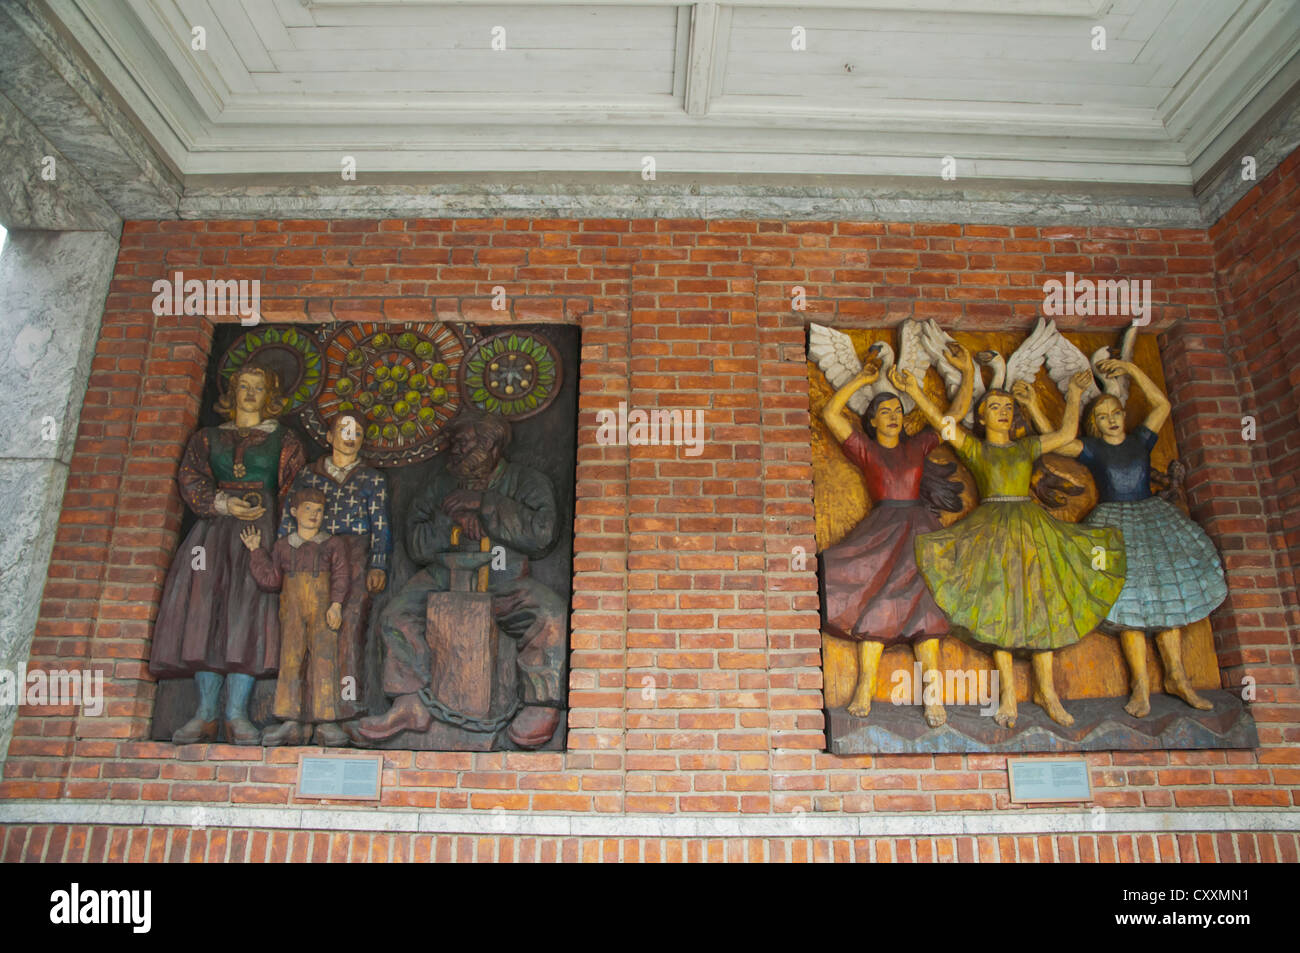 Murals on the wall of Rådhus the Town Hall Sentrum central Oslo Norway Europe - Stock Image